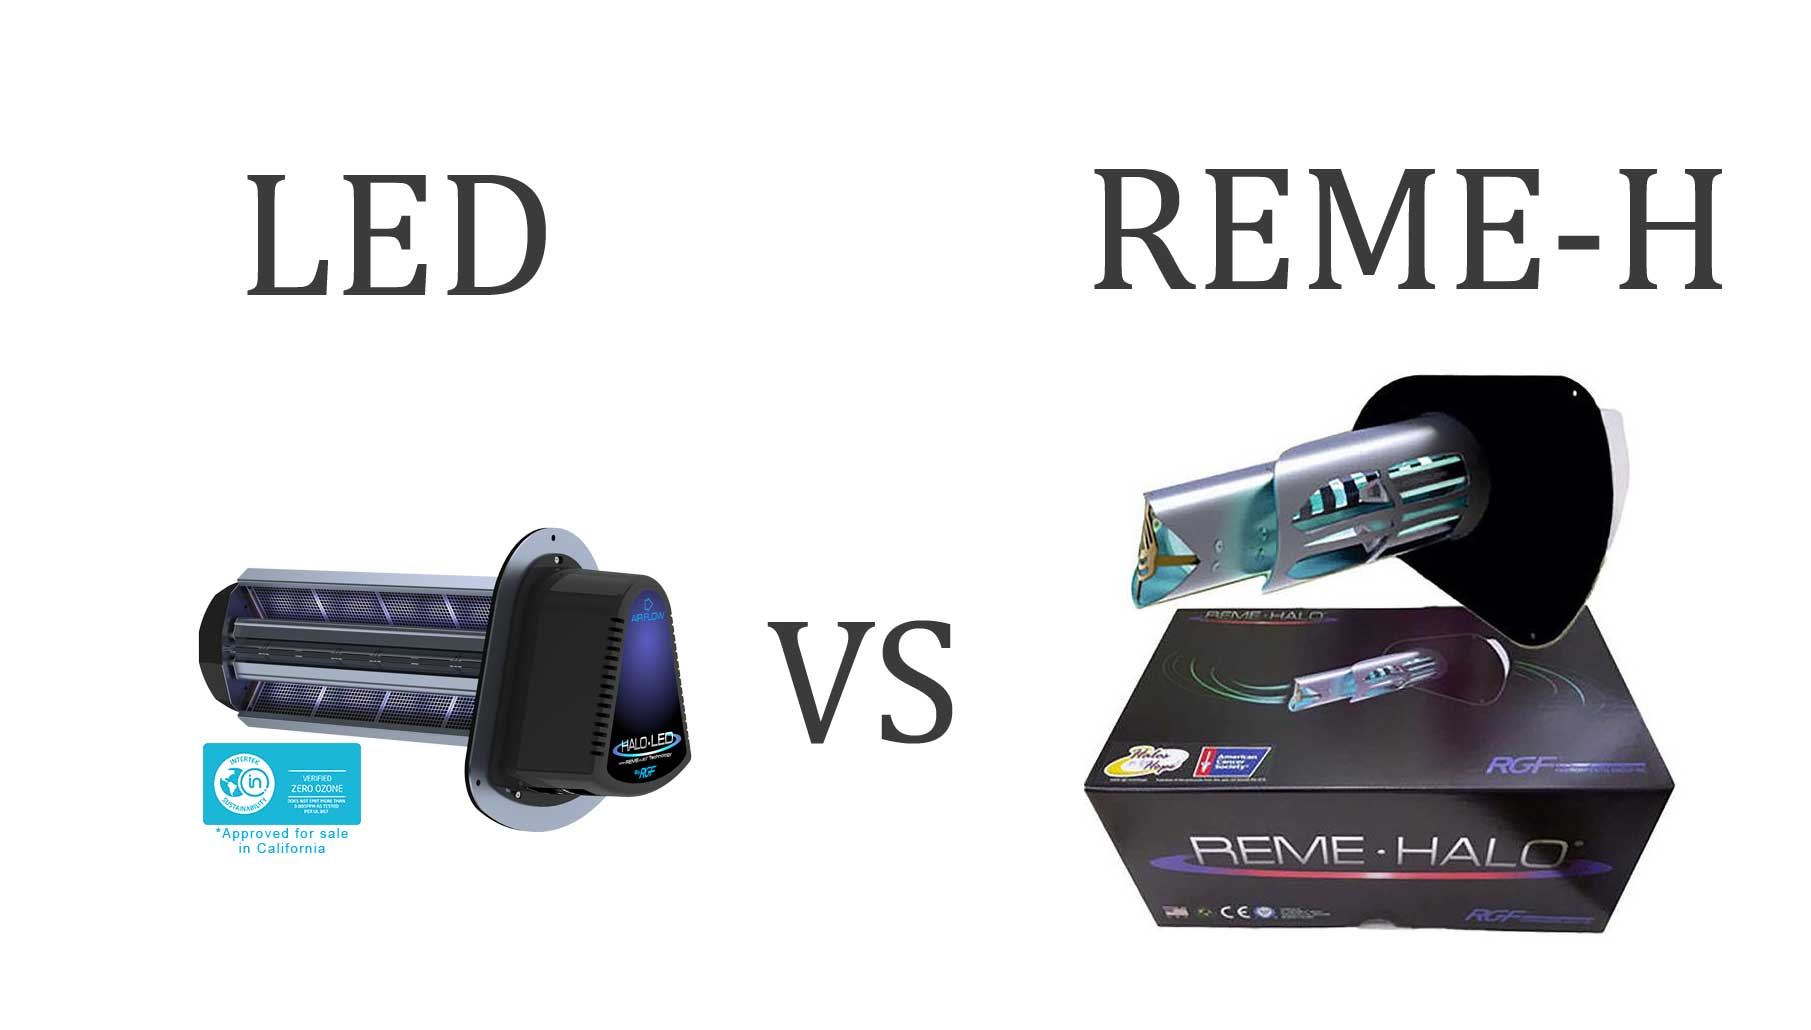 REME HALO Vs LED Induct Air Purifiers